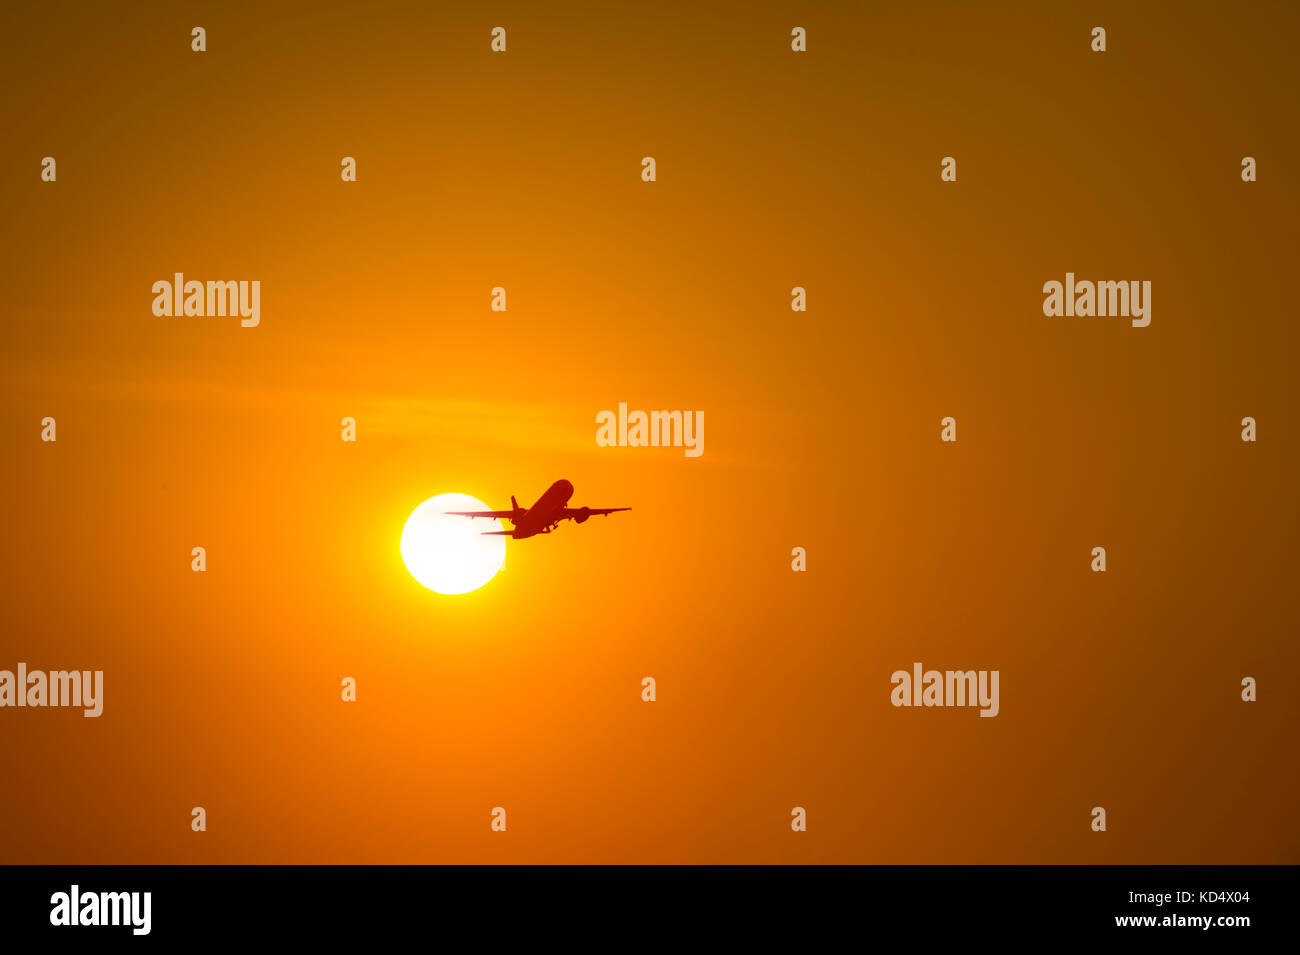 Airplane Flying In Front Of Sun - Stock Image